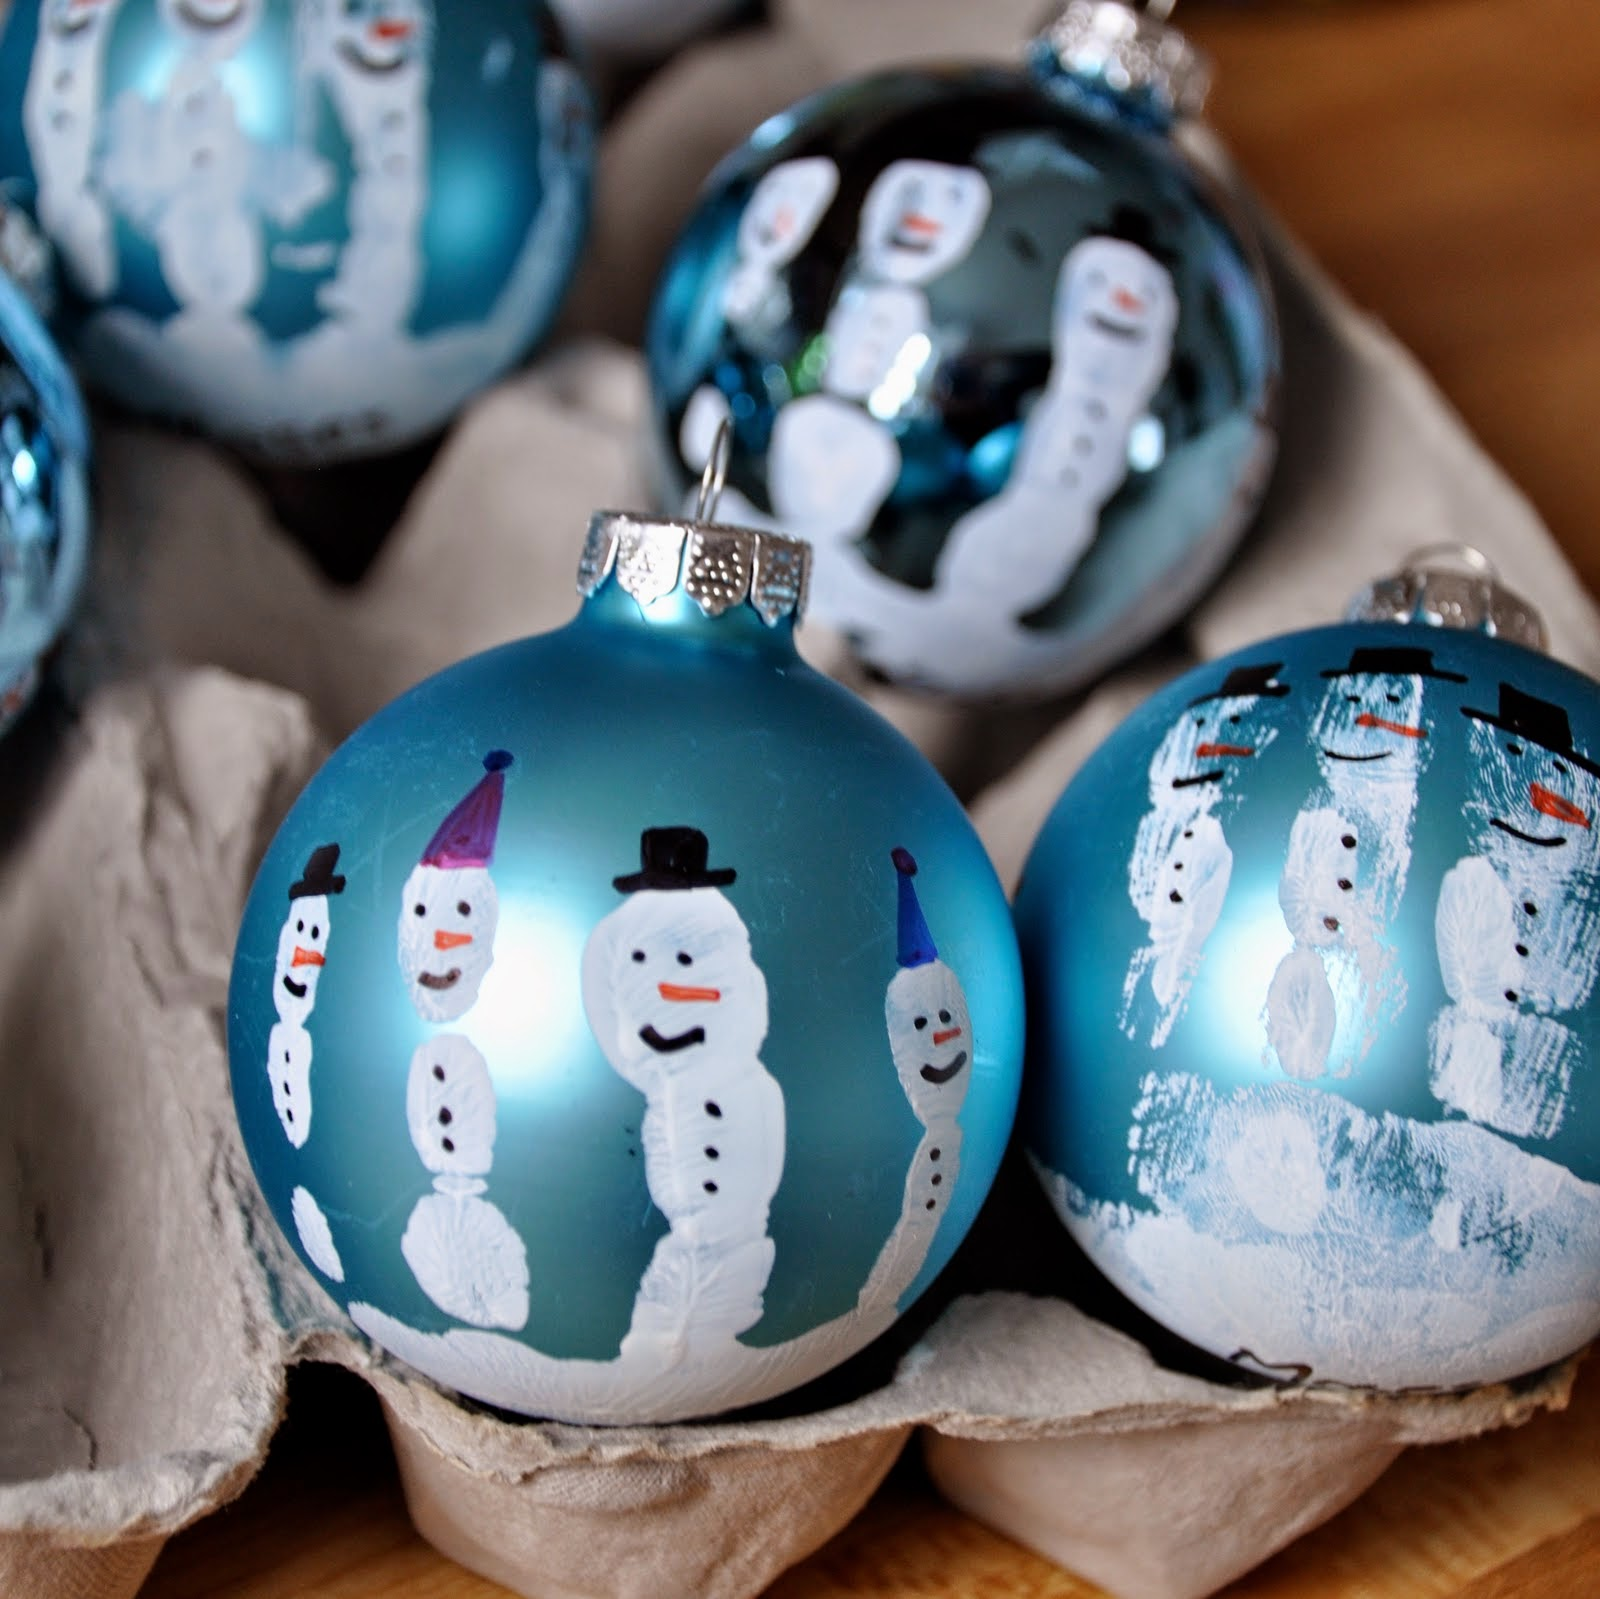 30 Homemade Ornaments for the Kids - DIY Craft Projects